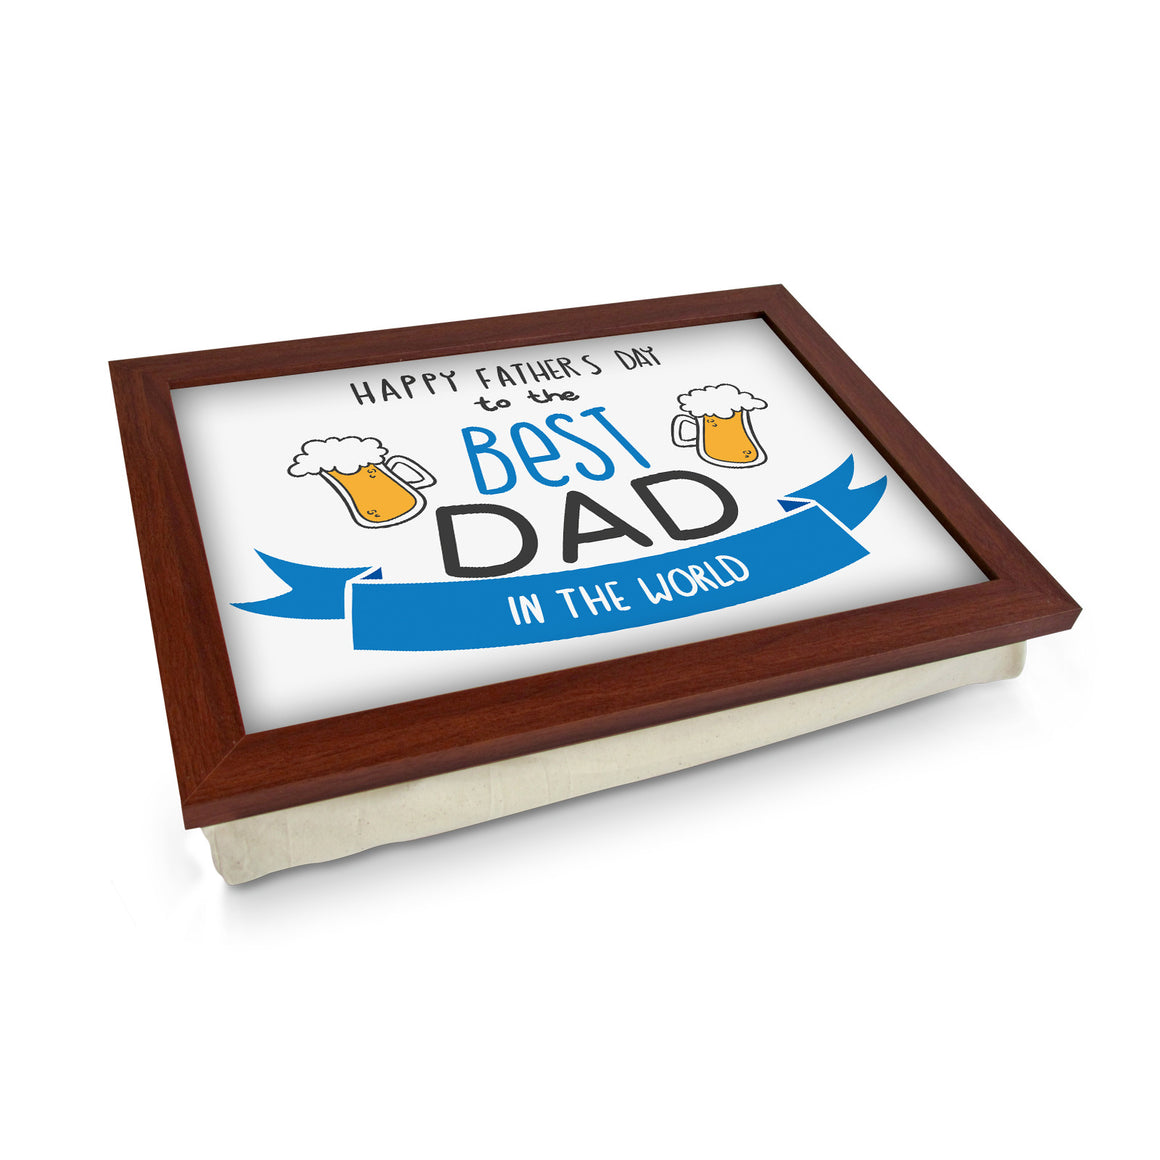 Best Dad In The World Lap Tray - L0740